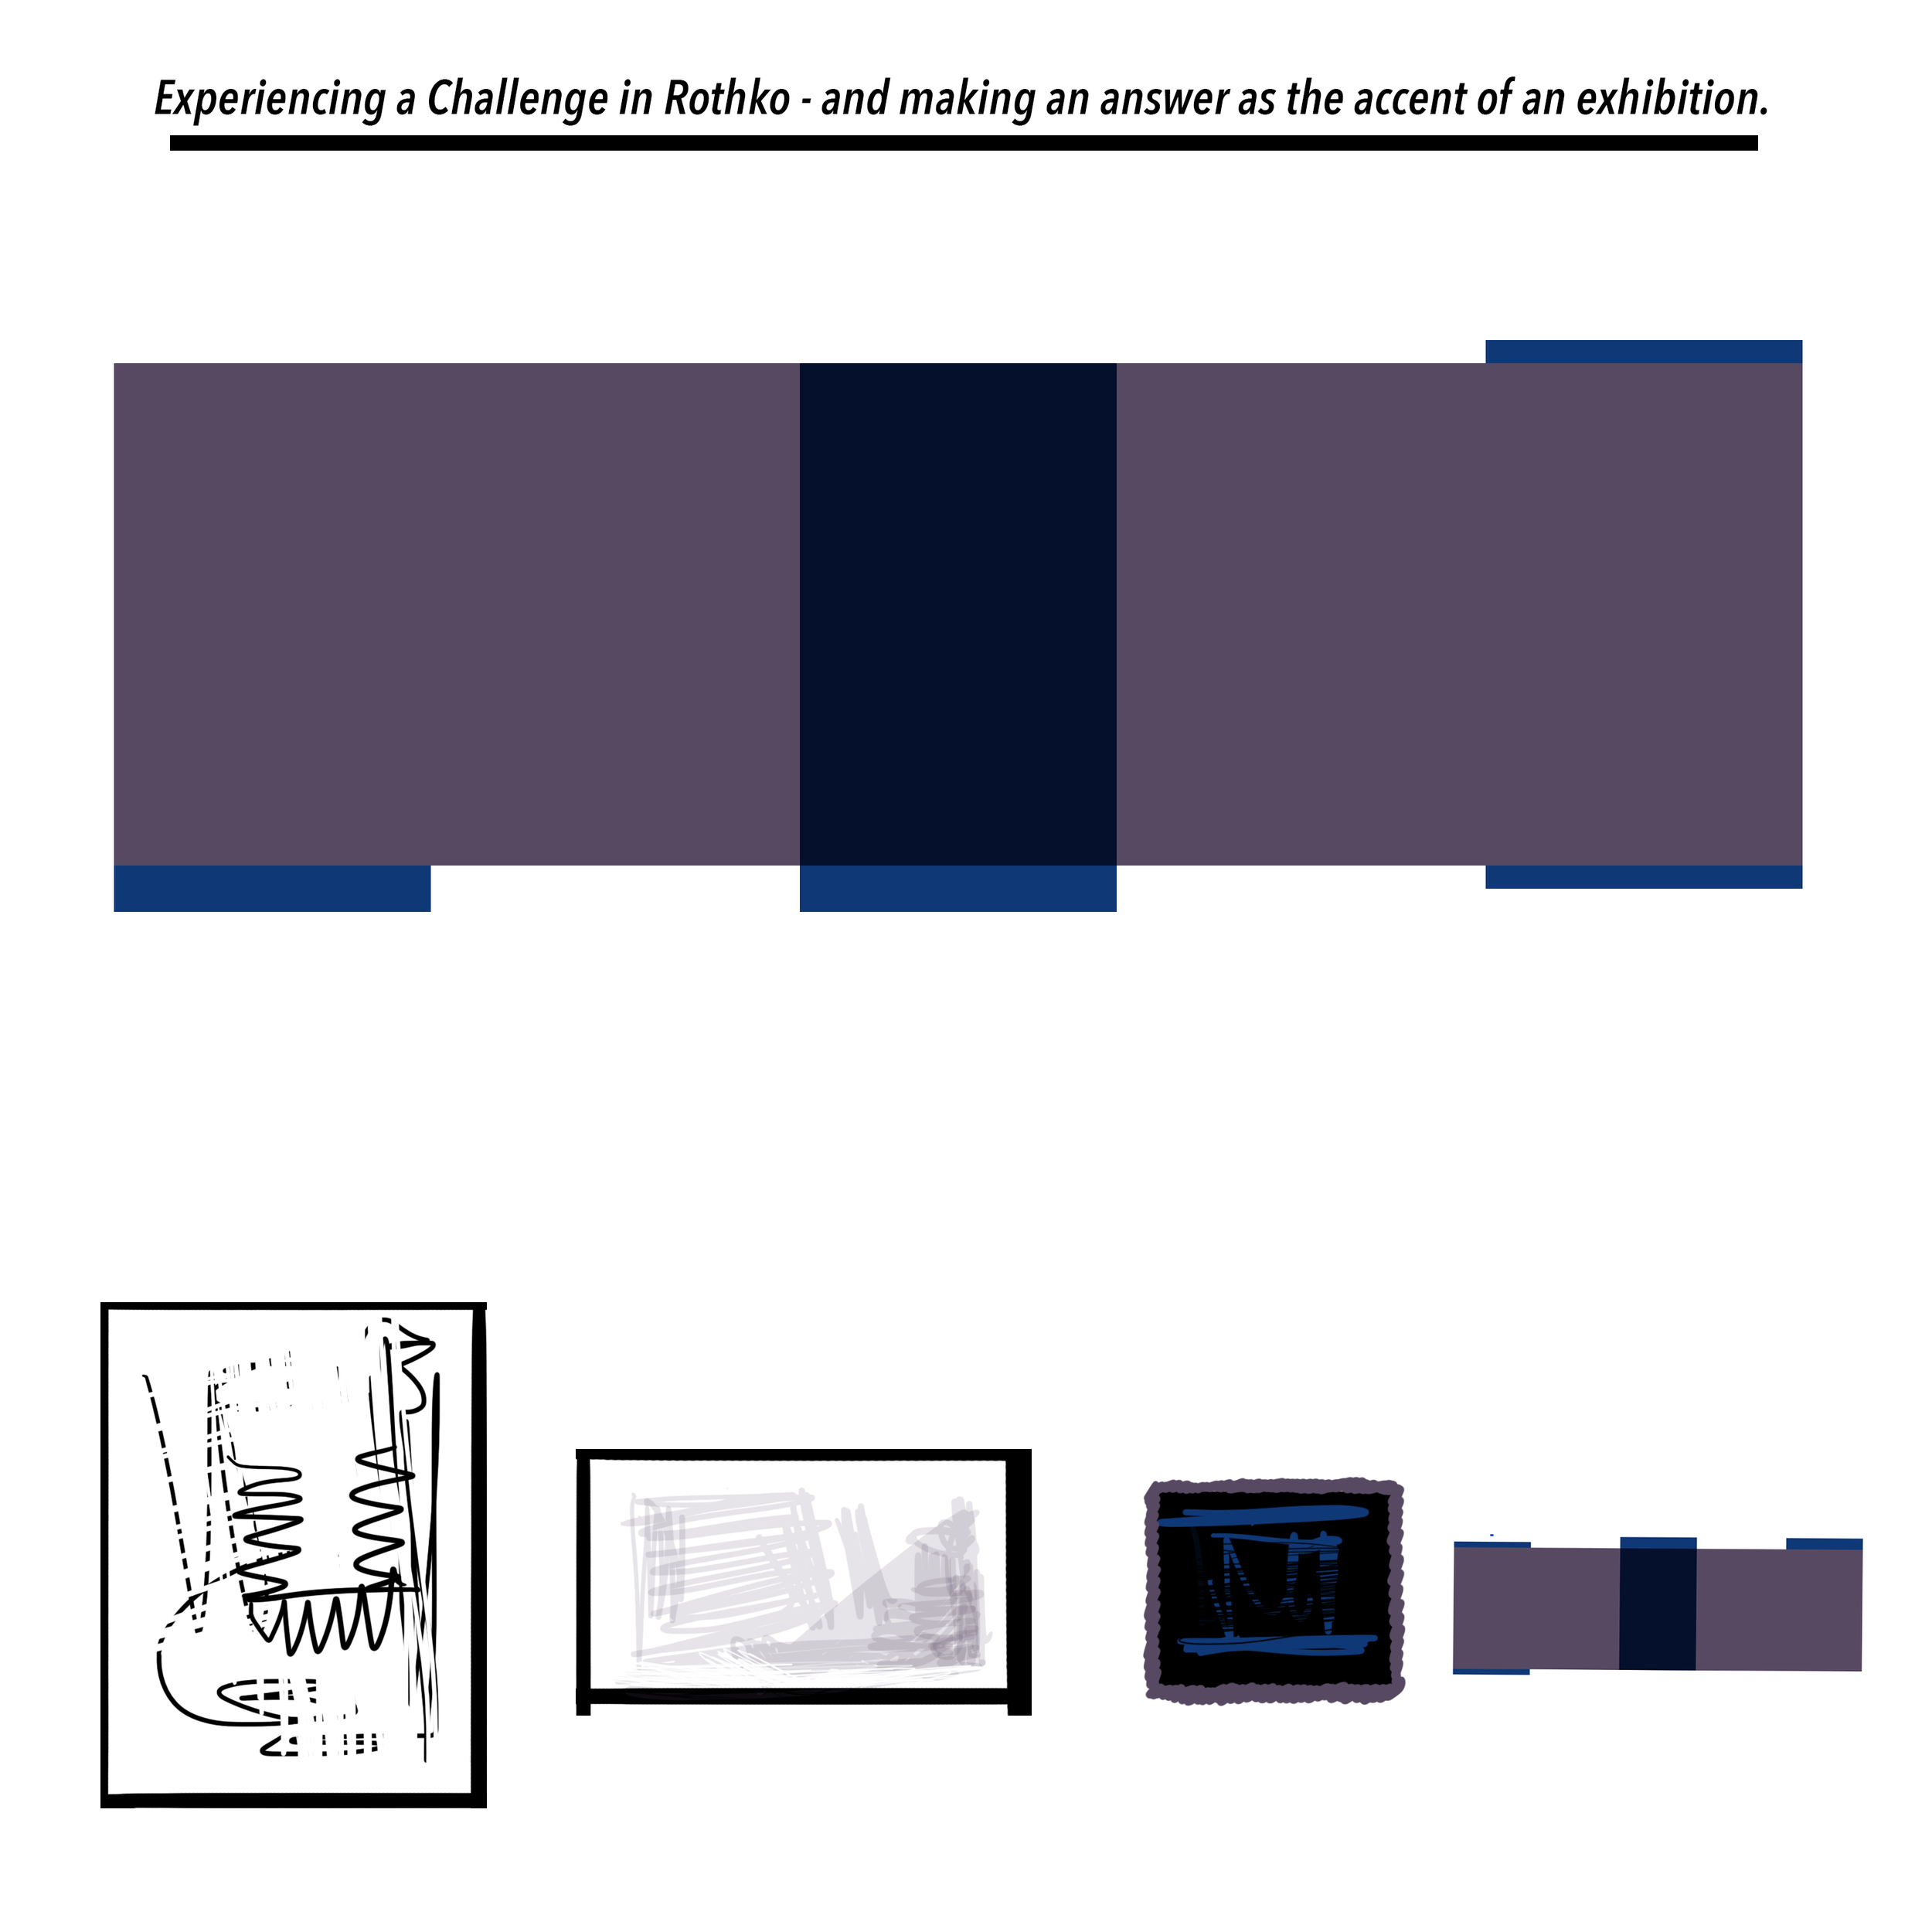 Experiencing a Challenge in Rothko - and making an answer as the accent of an exhibition